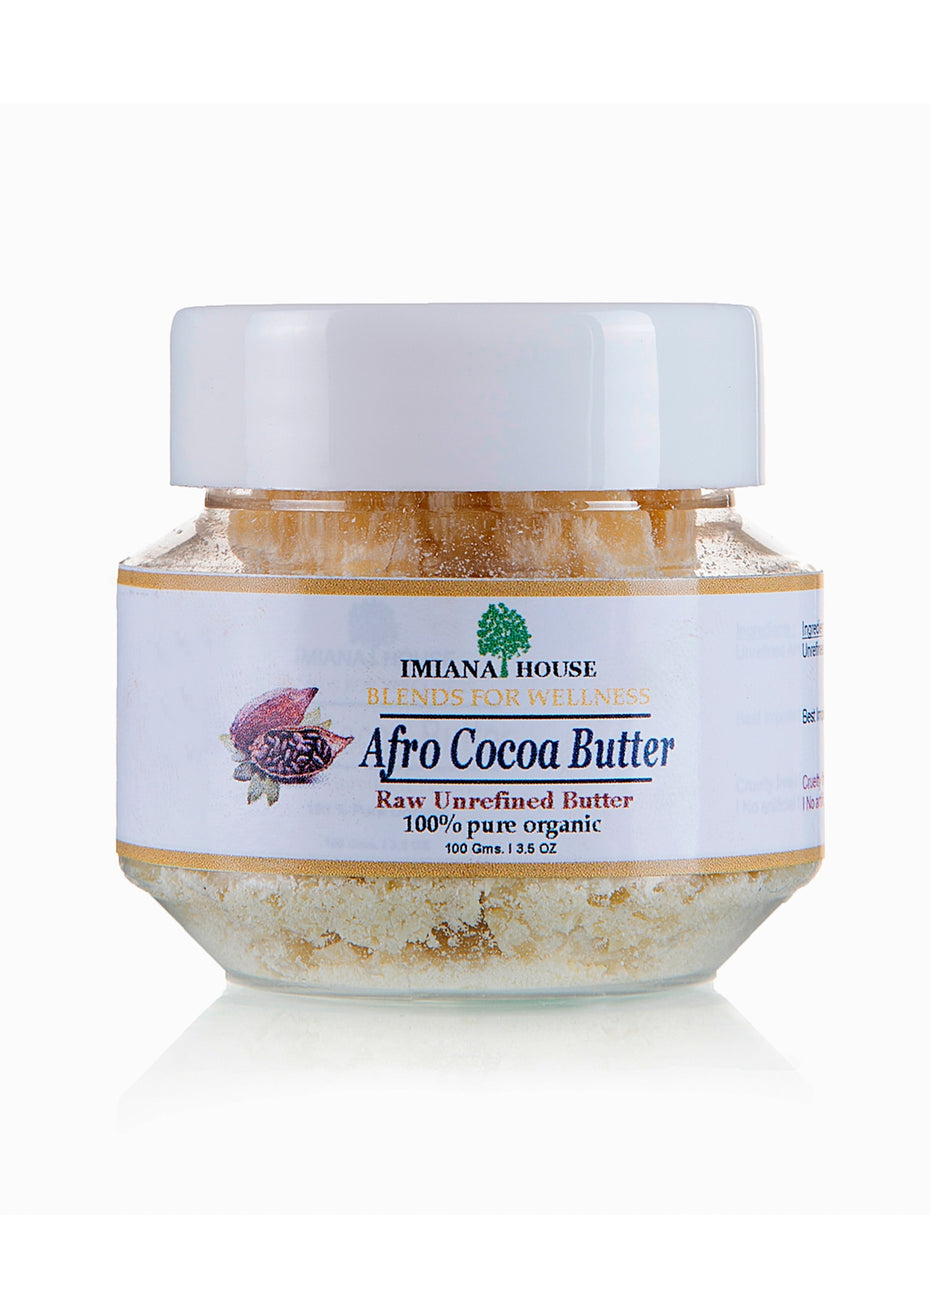 IMIANA HOUSE Organic Raw Unrefined African Cocoa Butter, Body Care, IMIANA HOUSE, ihaat, [made_in_india], [handmade] - ihaat